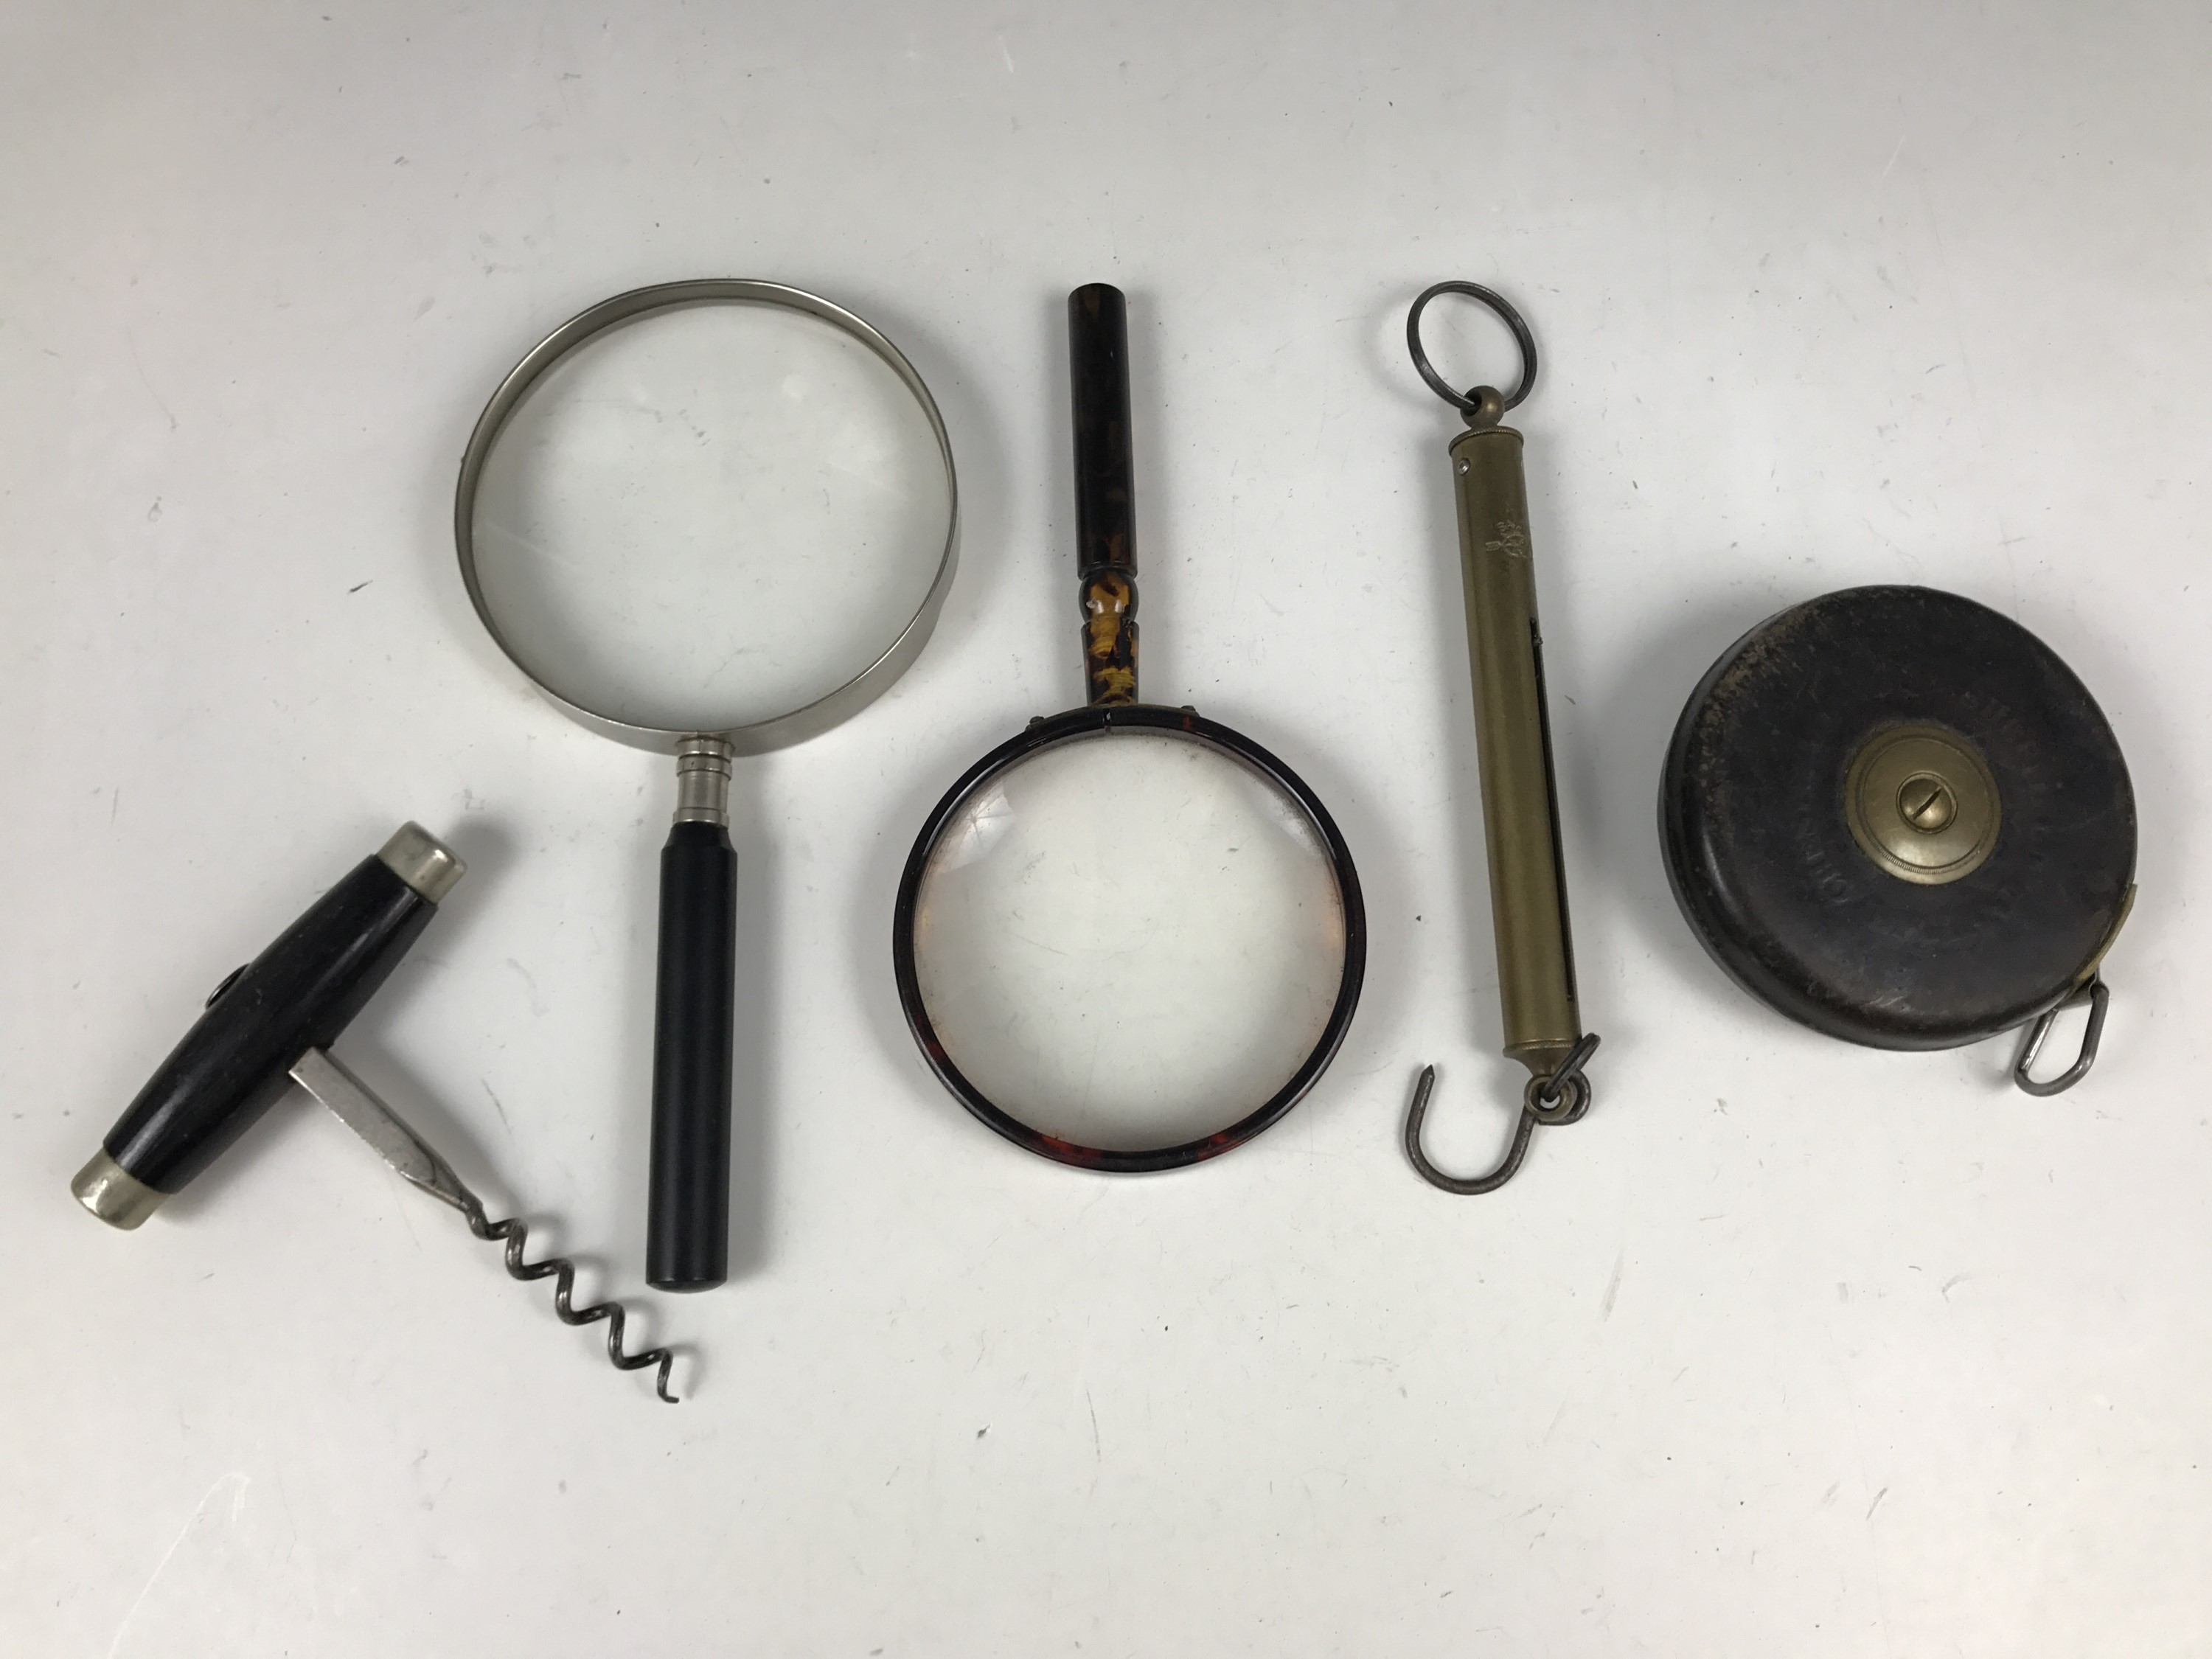 Lot 28 - Two vintage magnifying glasses together with Salter scales, a corkscrew and a Chesterman's 50ft tape